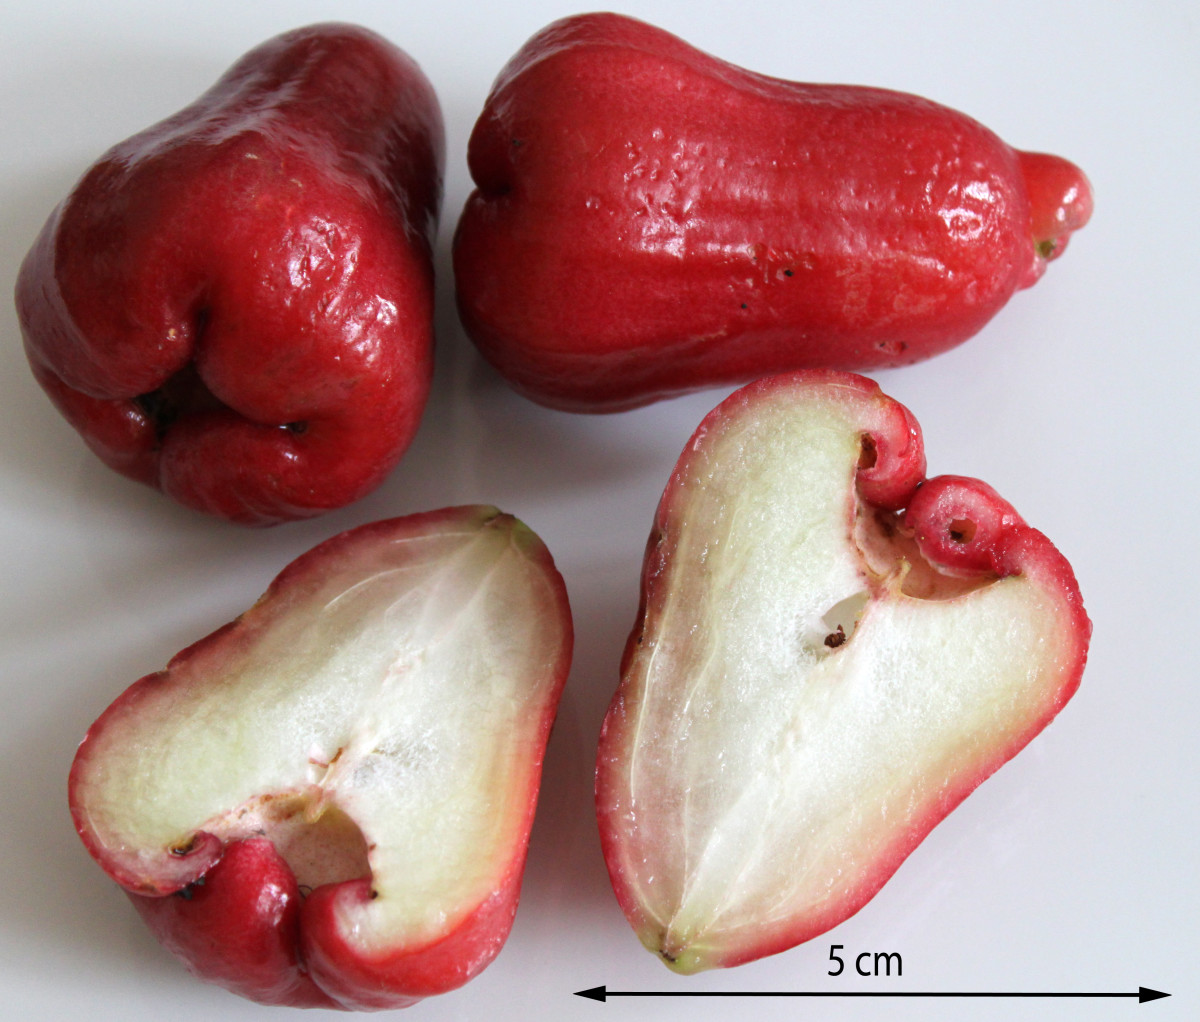 Honey apples, or jambu madu, come in many shapes, colors, and sizes.